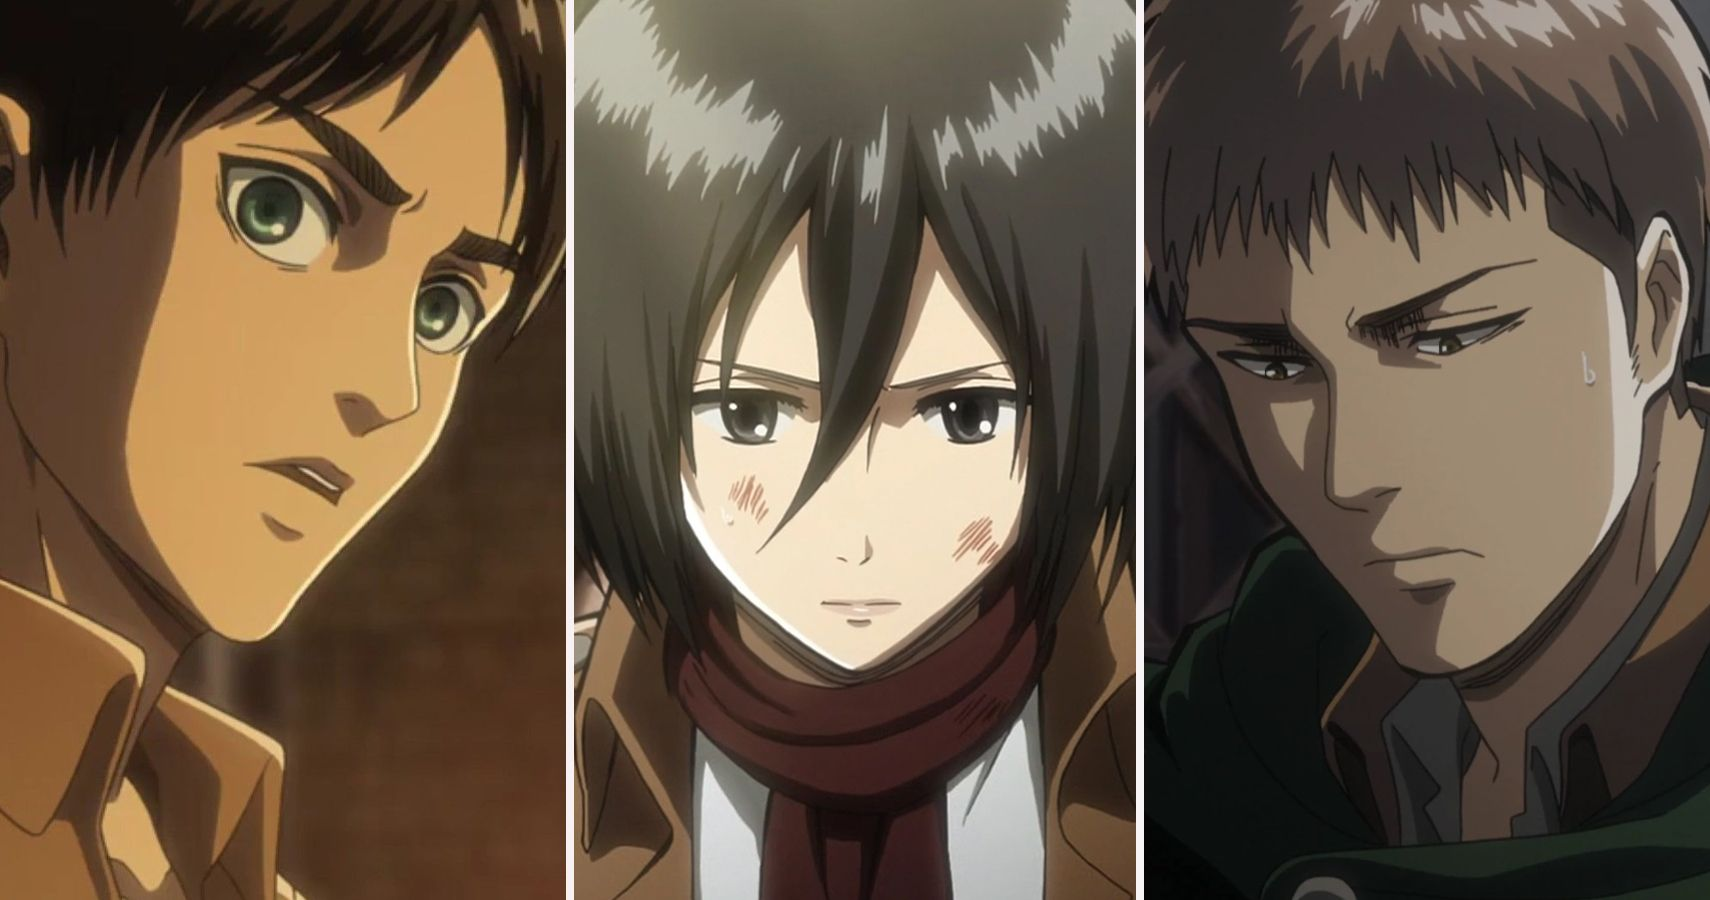 5 Attack On Titan Relationships The Fans Are Behind 5 They Rejected Check out amazing mikasa artwork on deviantart. attack on titan relationships the fans